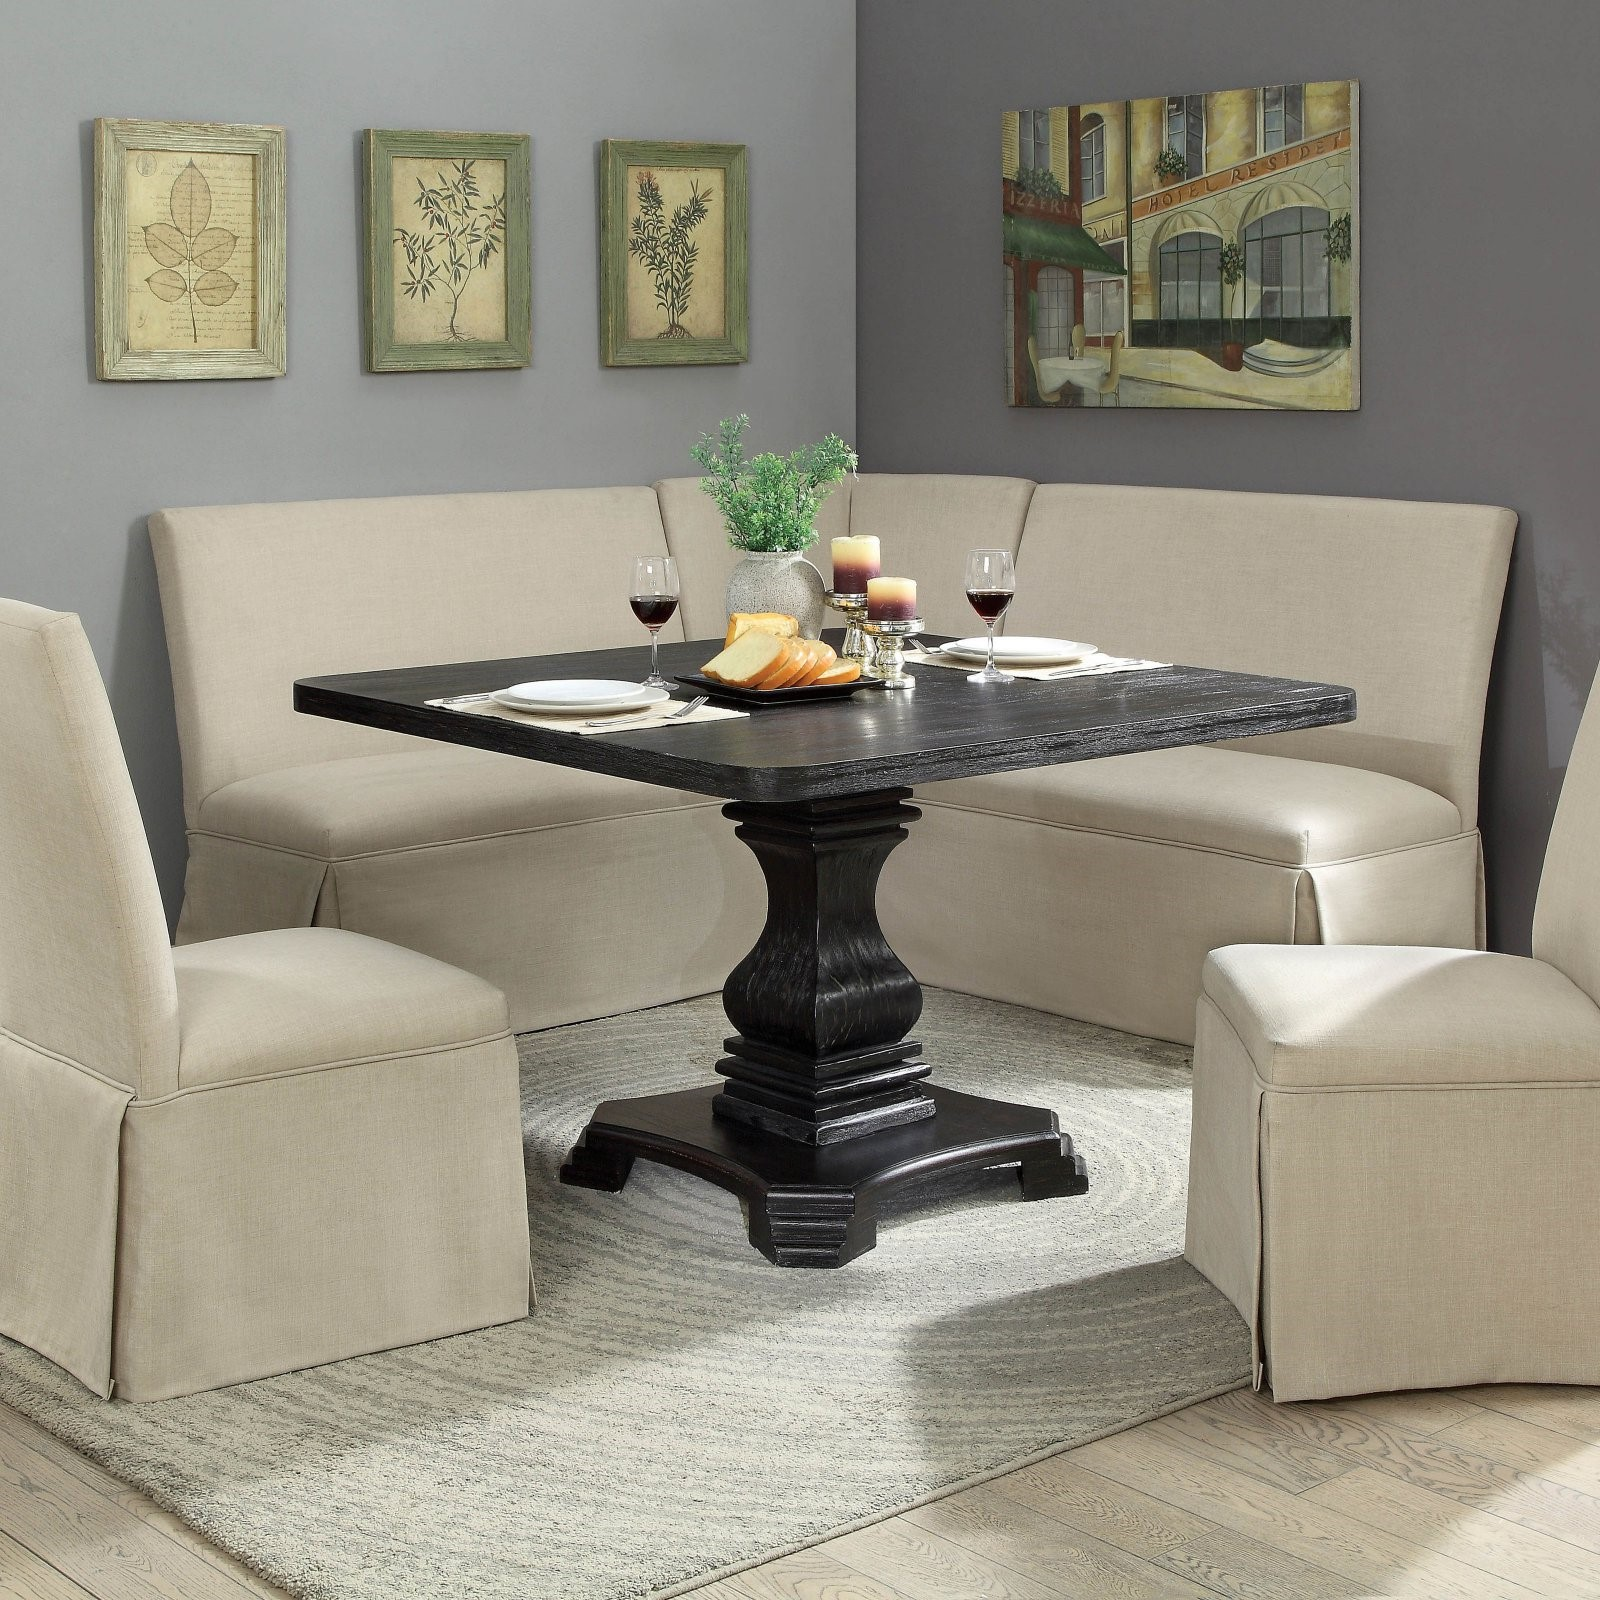 Furniture of America Anton Square Dining Table